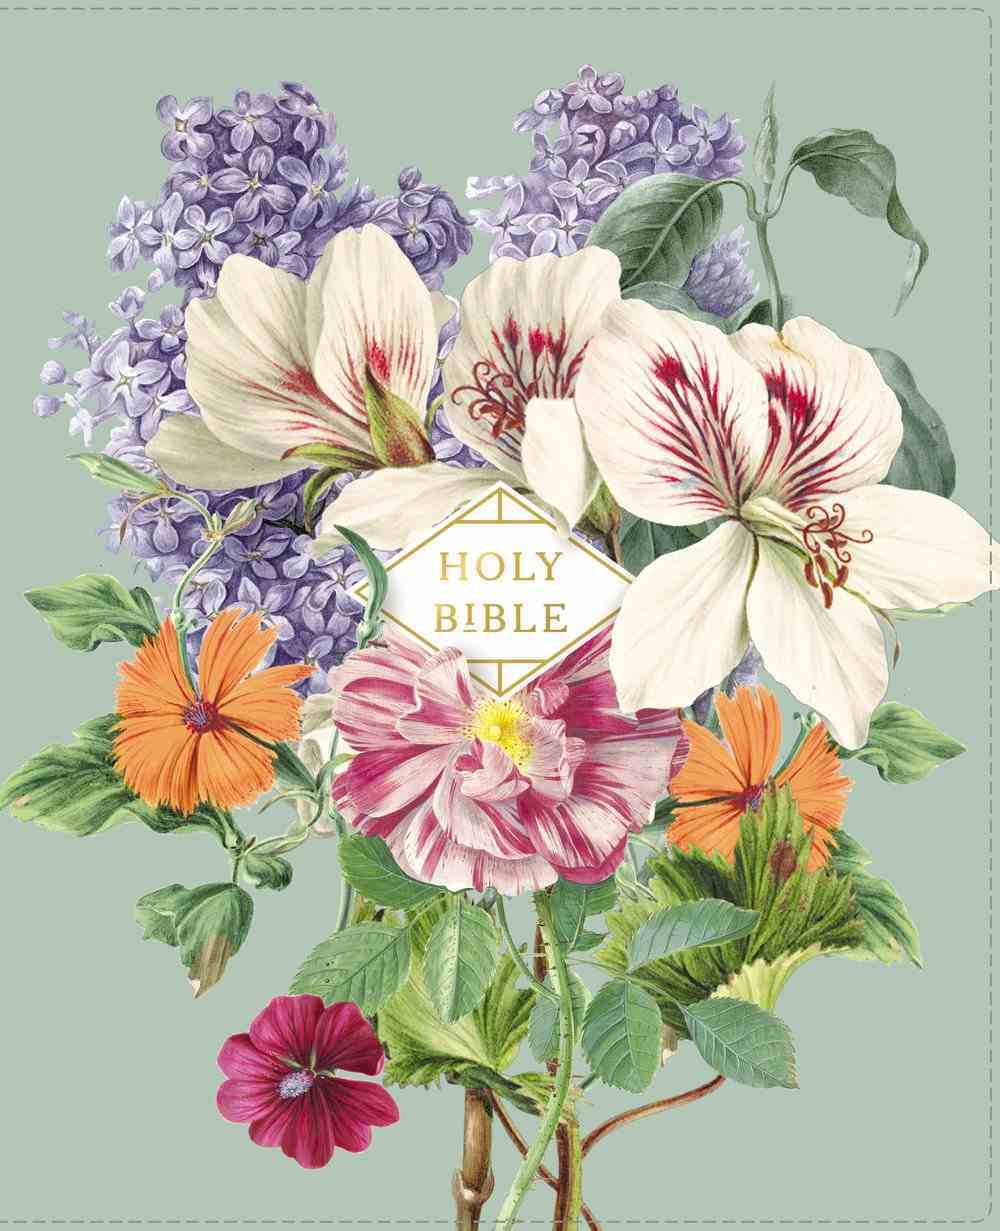 NASB Artisan Collection Bible Sage Floral 1995 Text (Red Letter Edition) Premium Imitation Leather